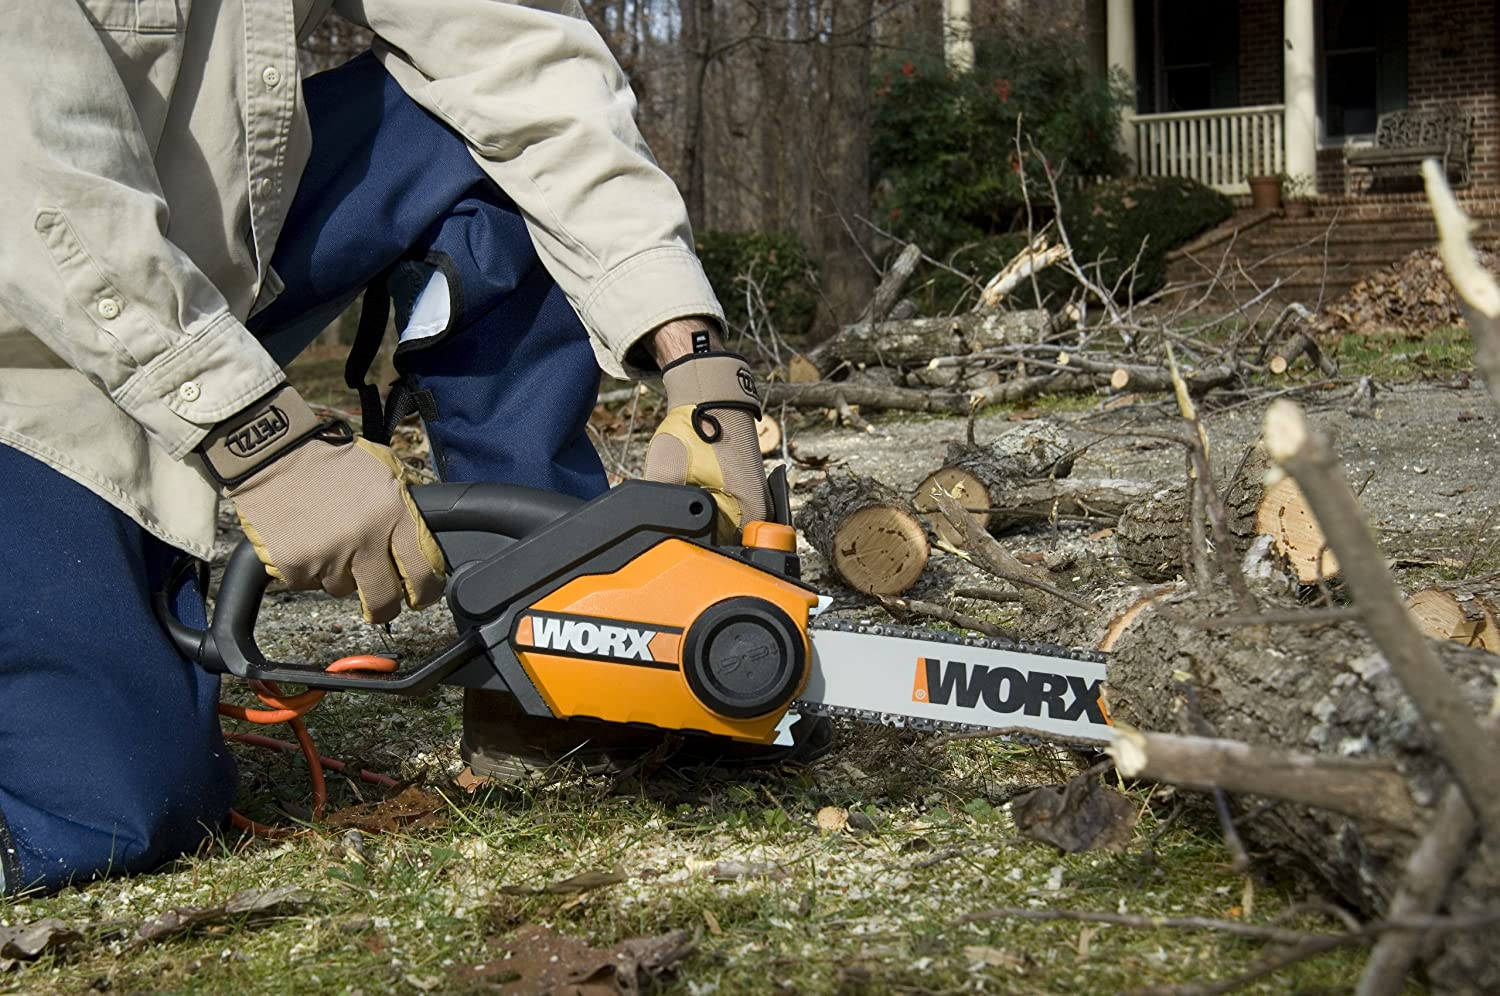 WORX WG3041 Chainsaws product image 2